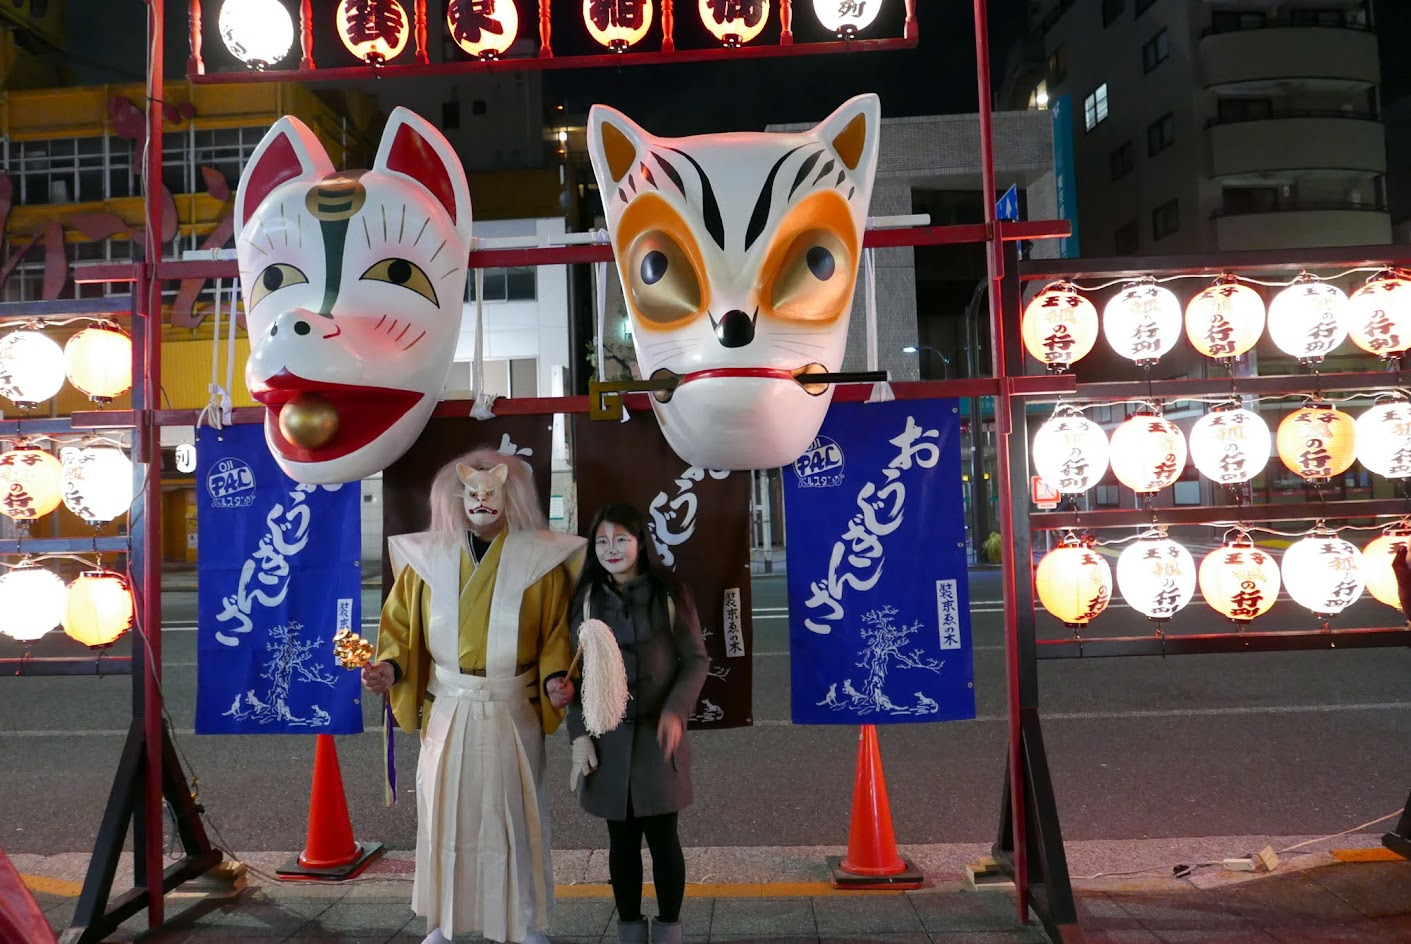 Oji Kitsune-no-gyorestu Fox Parade is held every year celebrating the folklore of foxes disguised as humans visiting the shrine on New Year's Eve. Lots of locals with fox masks and fox face paint... on the way out we ran into what looks like the Fox Parade Master.